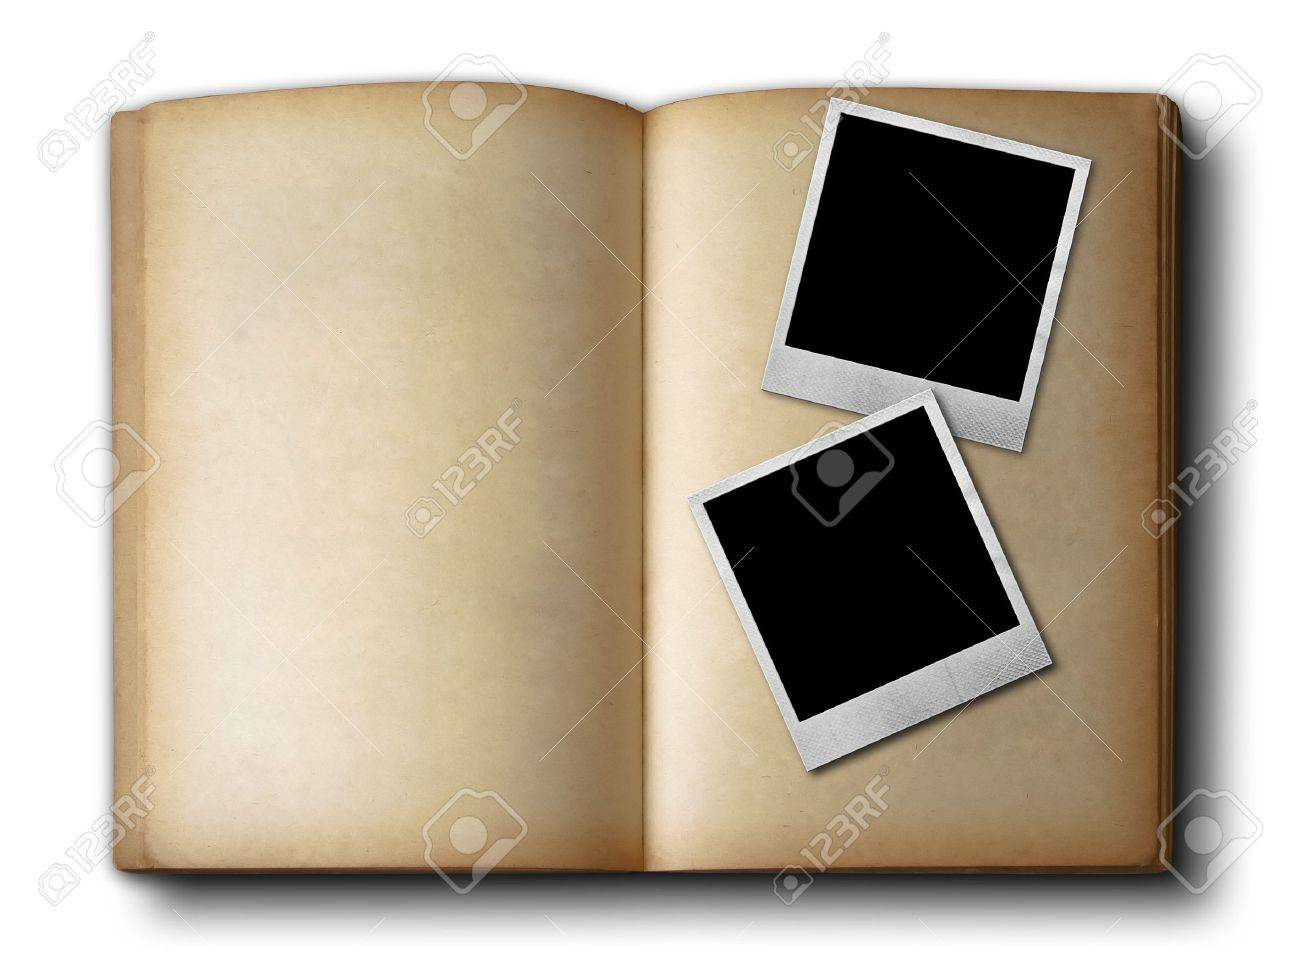 Two Photo Frames On Old Open Book On White Background Stock Photo